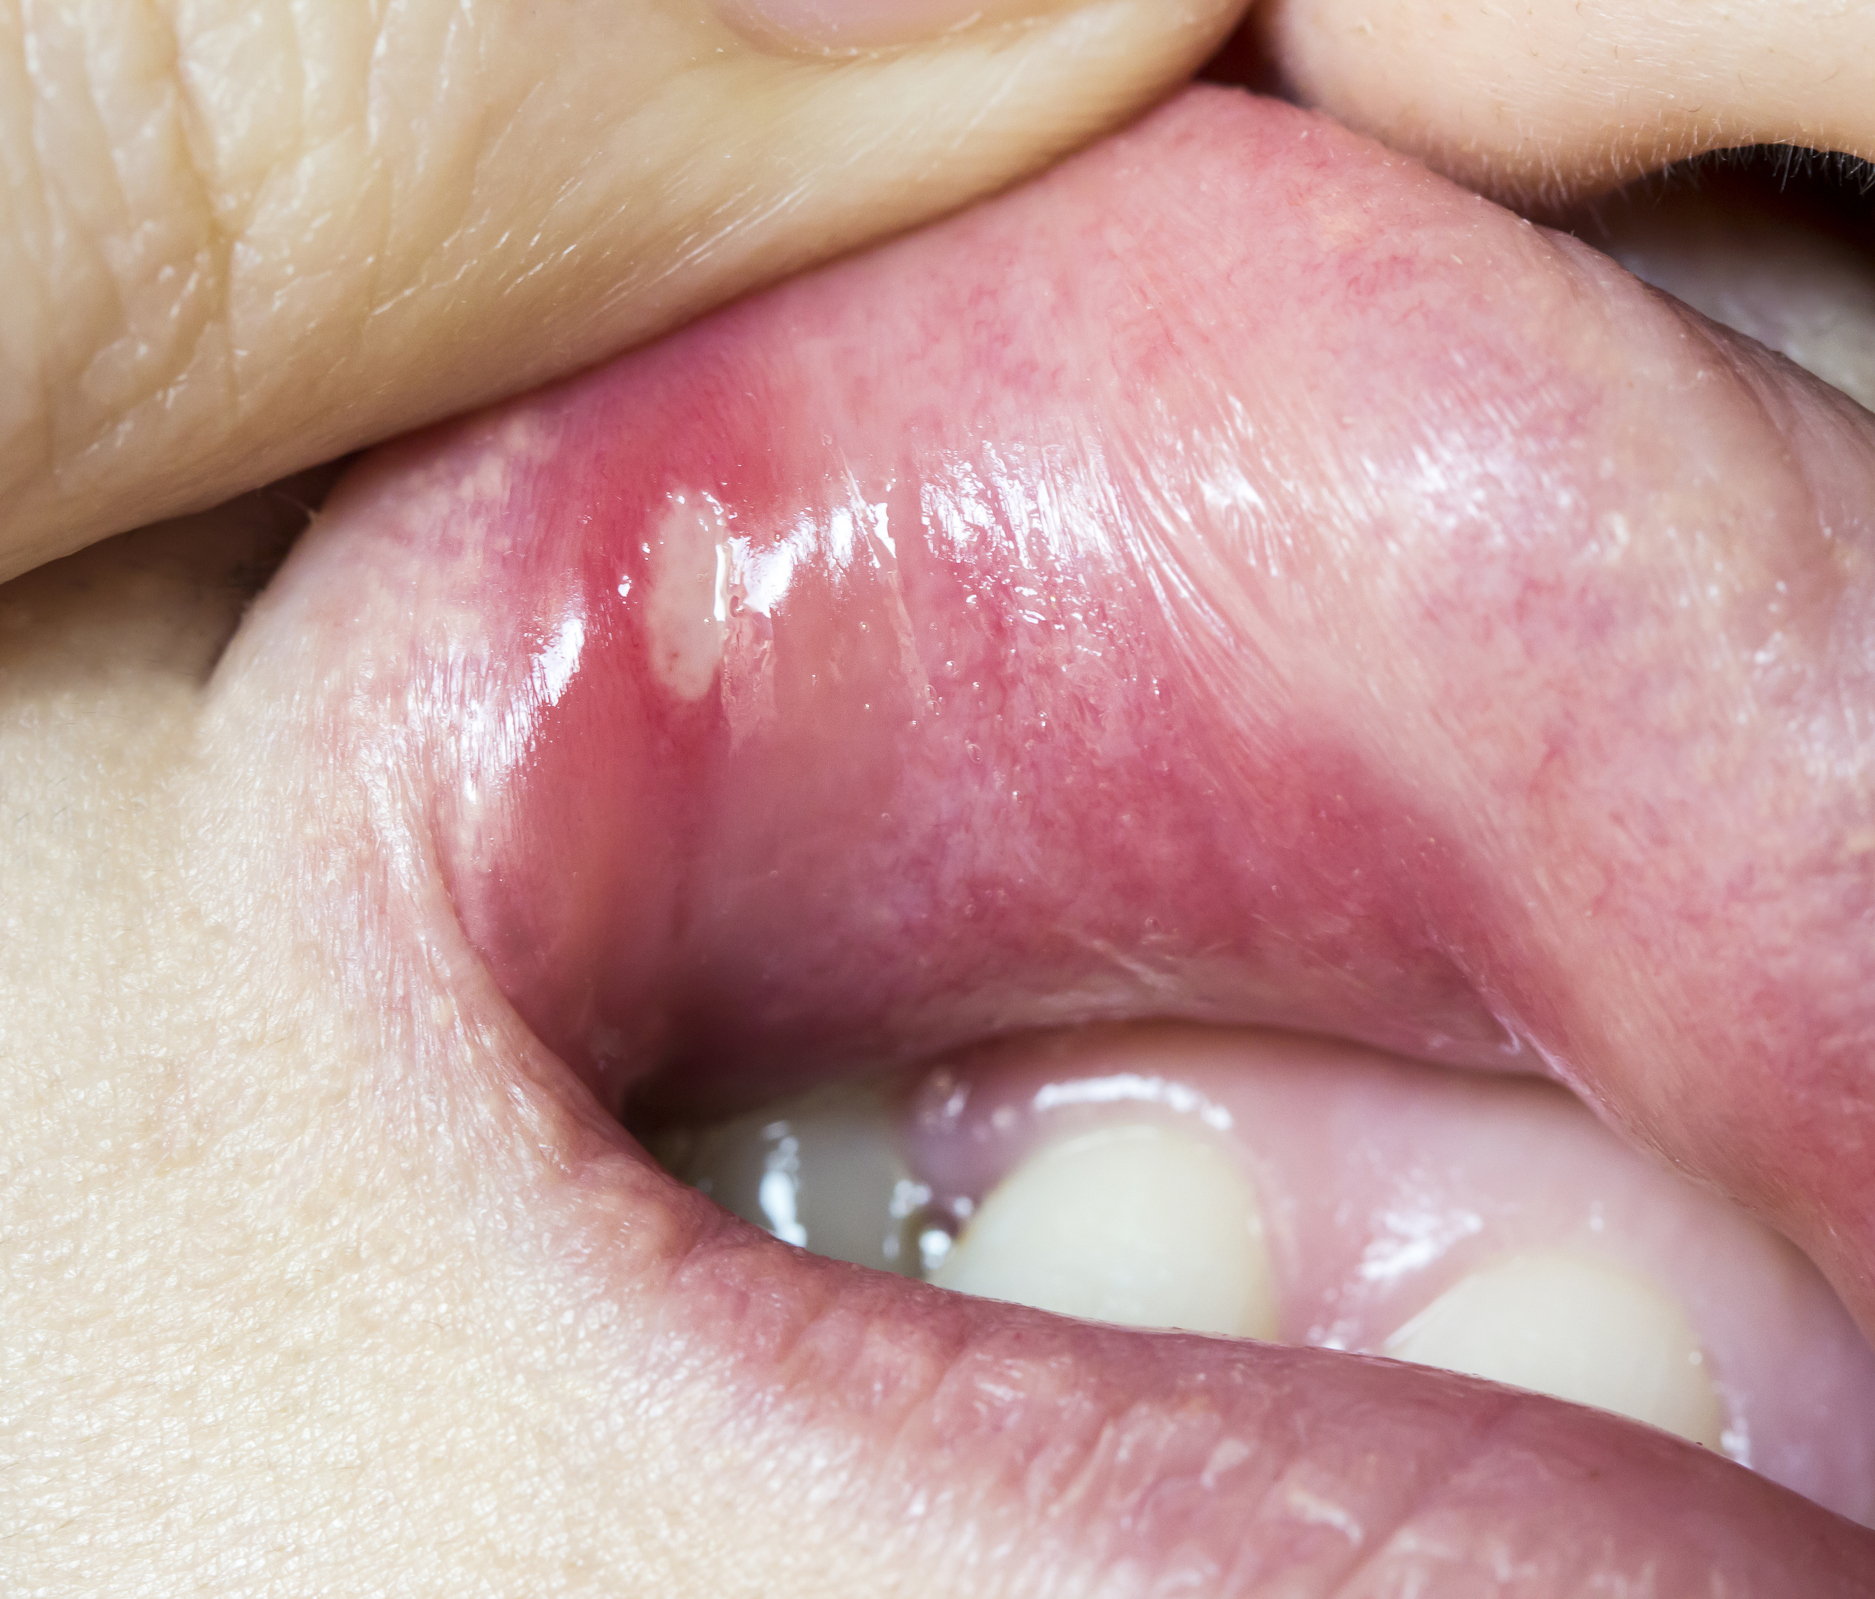 cancer hpv mouth